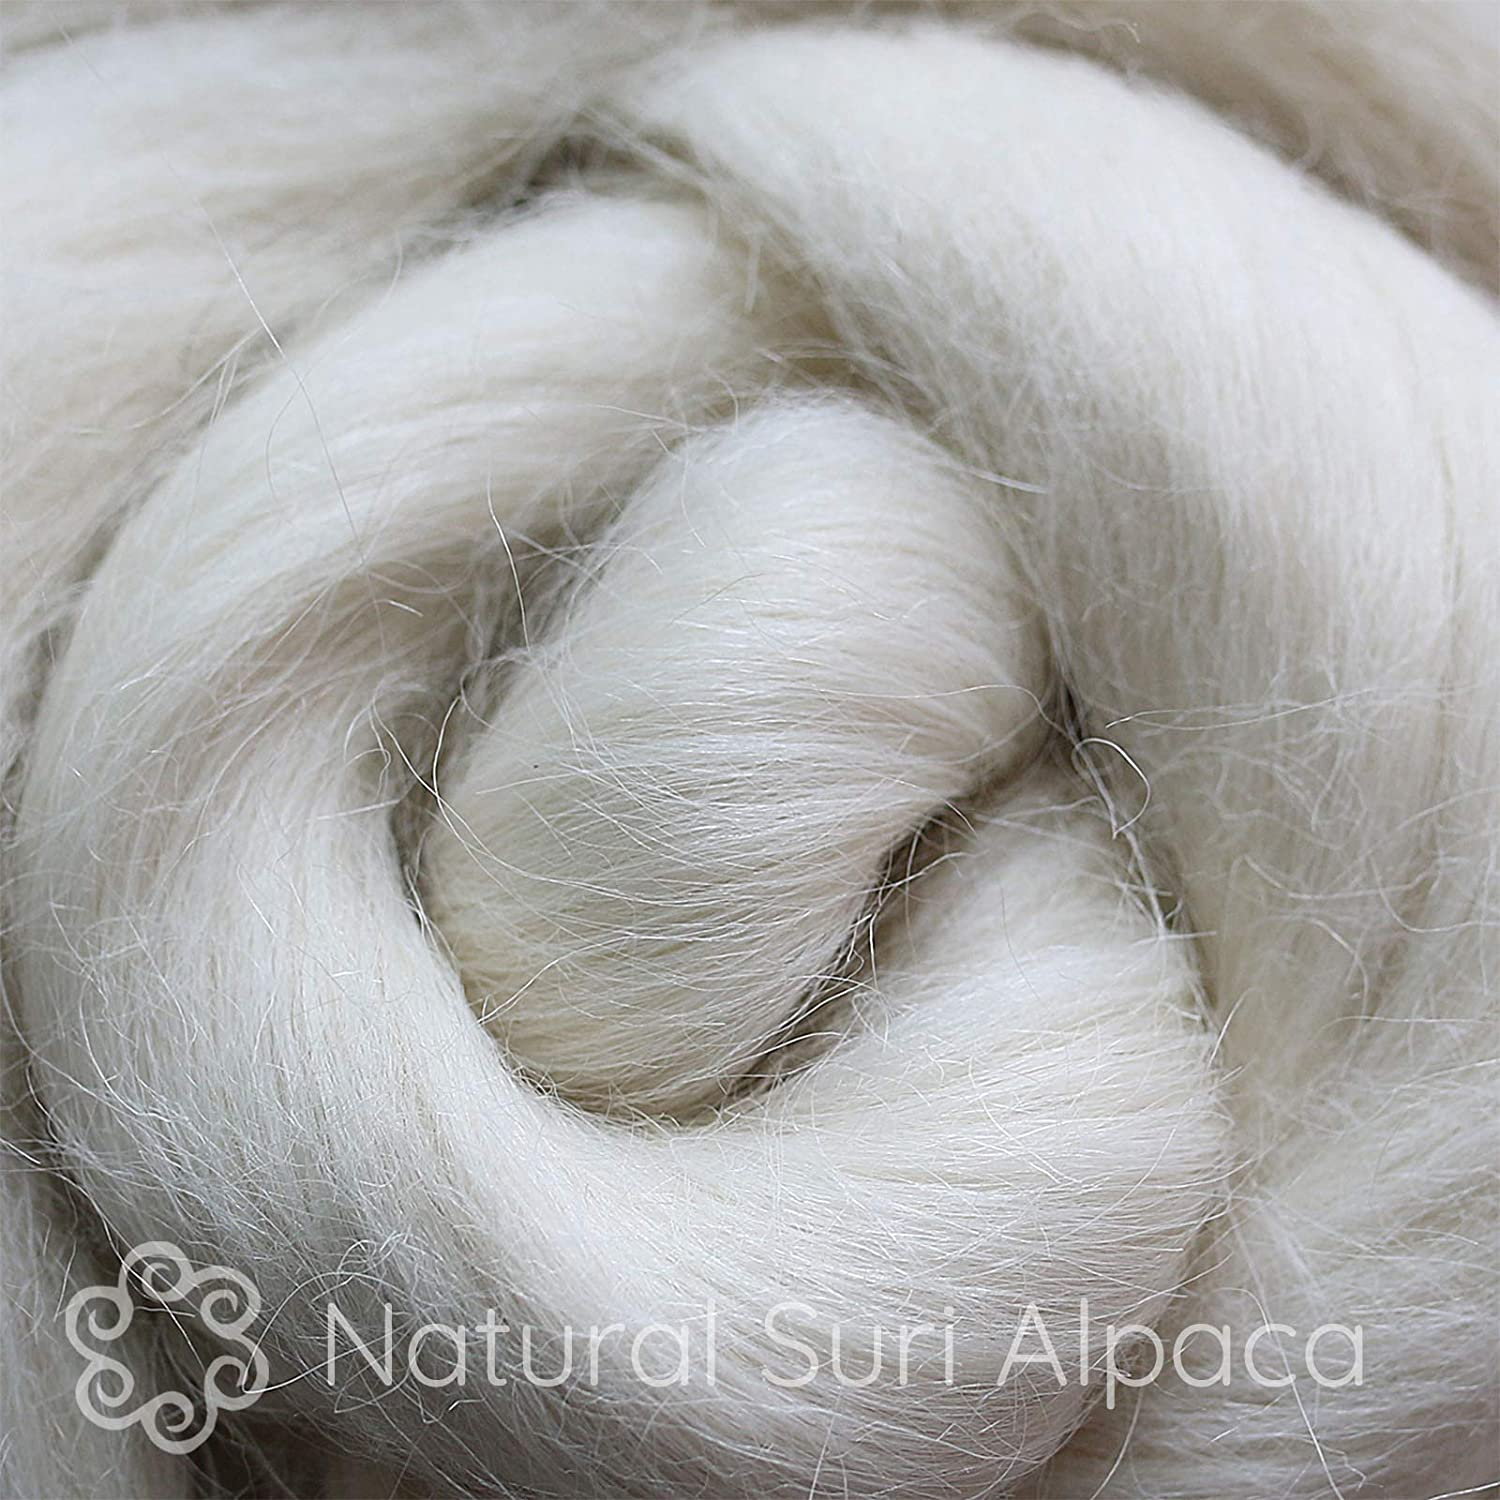 Natural White Combed Top. Suri Alpaca Fiber for Spinning Blending Felting Dyeing and Doll Making